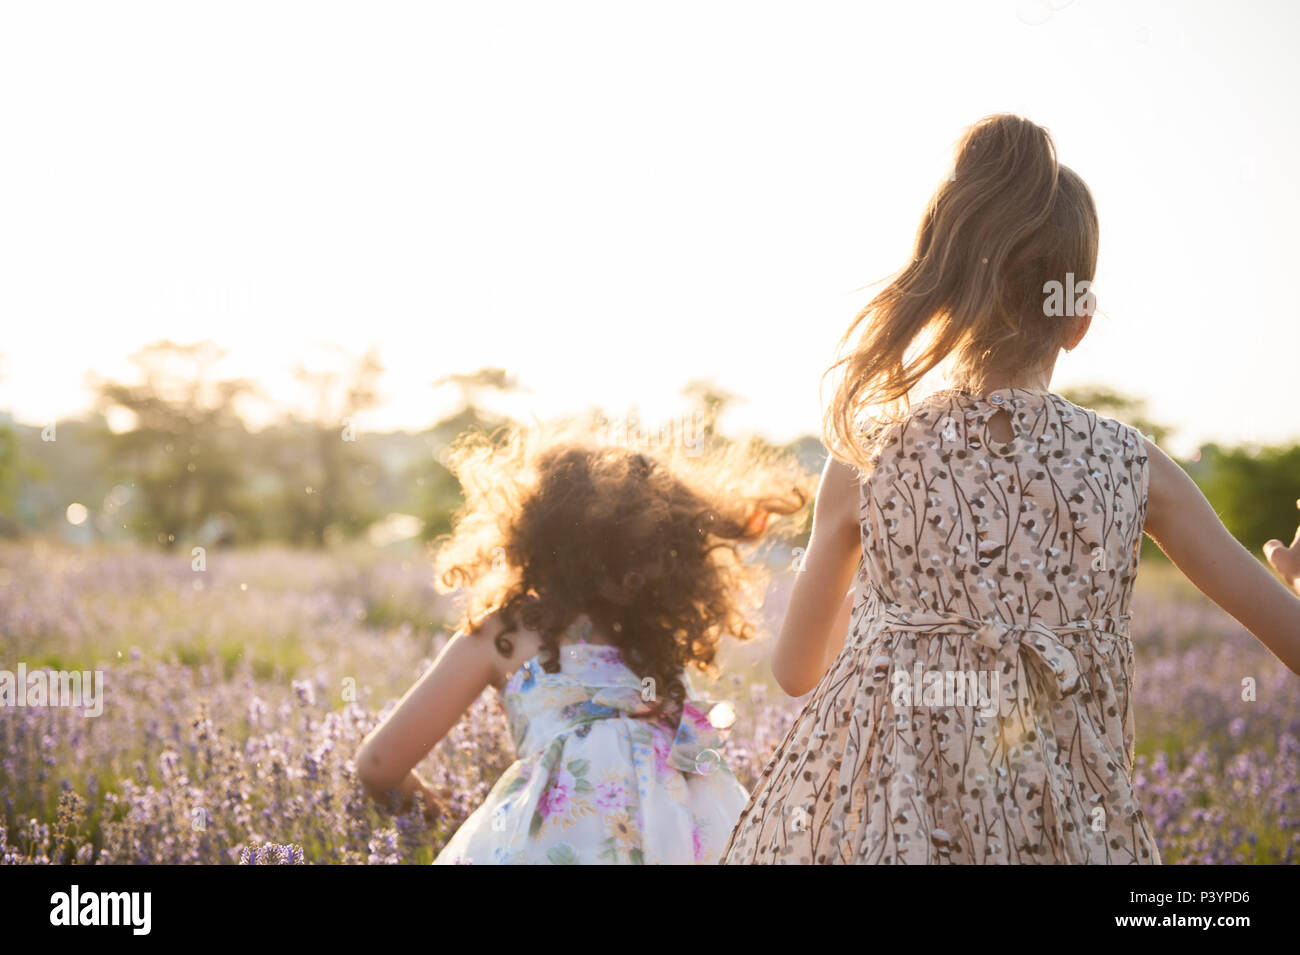 two playful small girls in dresses among lavender field play soap bubbles - Stock Image